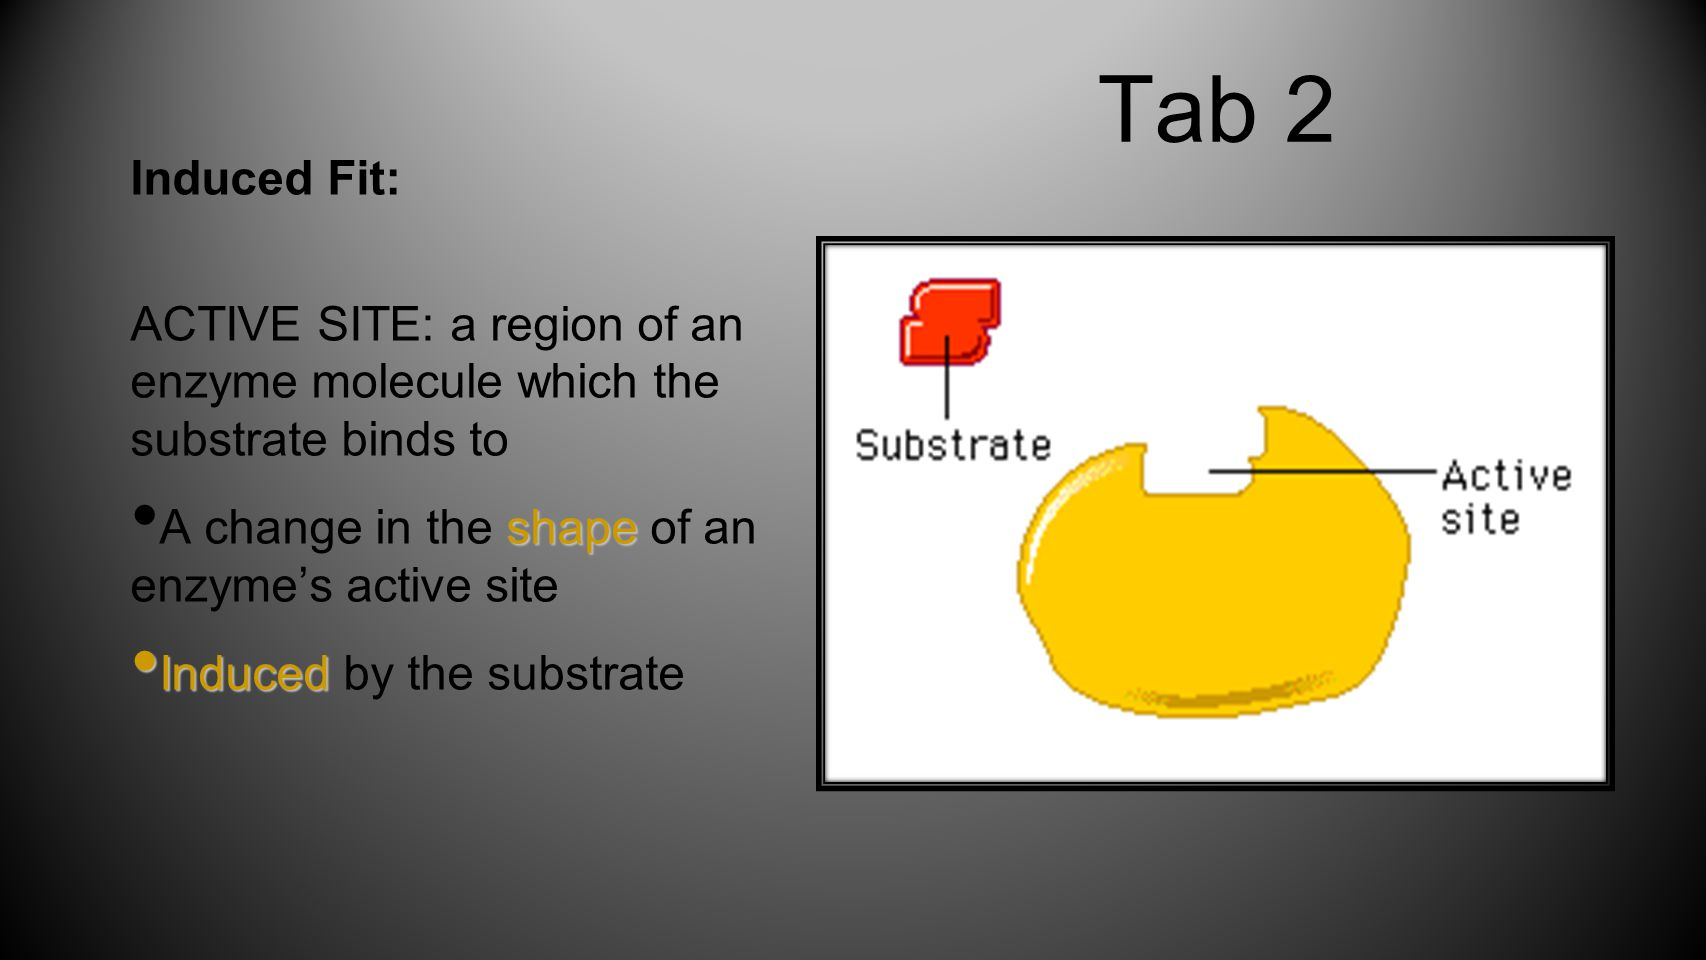 Tab 2 Induced Fit: ACTIVE SITE: a region of an enzyme molecule which the substrate binds to shape A change in the shape of an enzyme's active site Induced Induced by the substrate